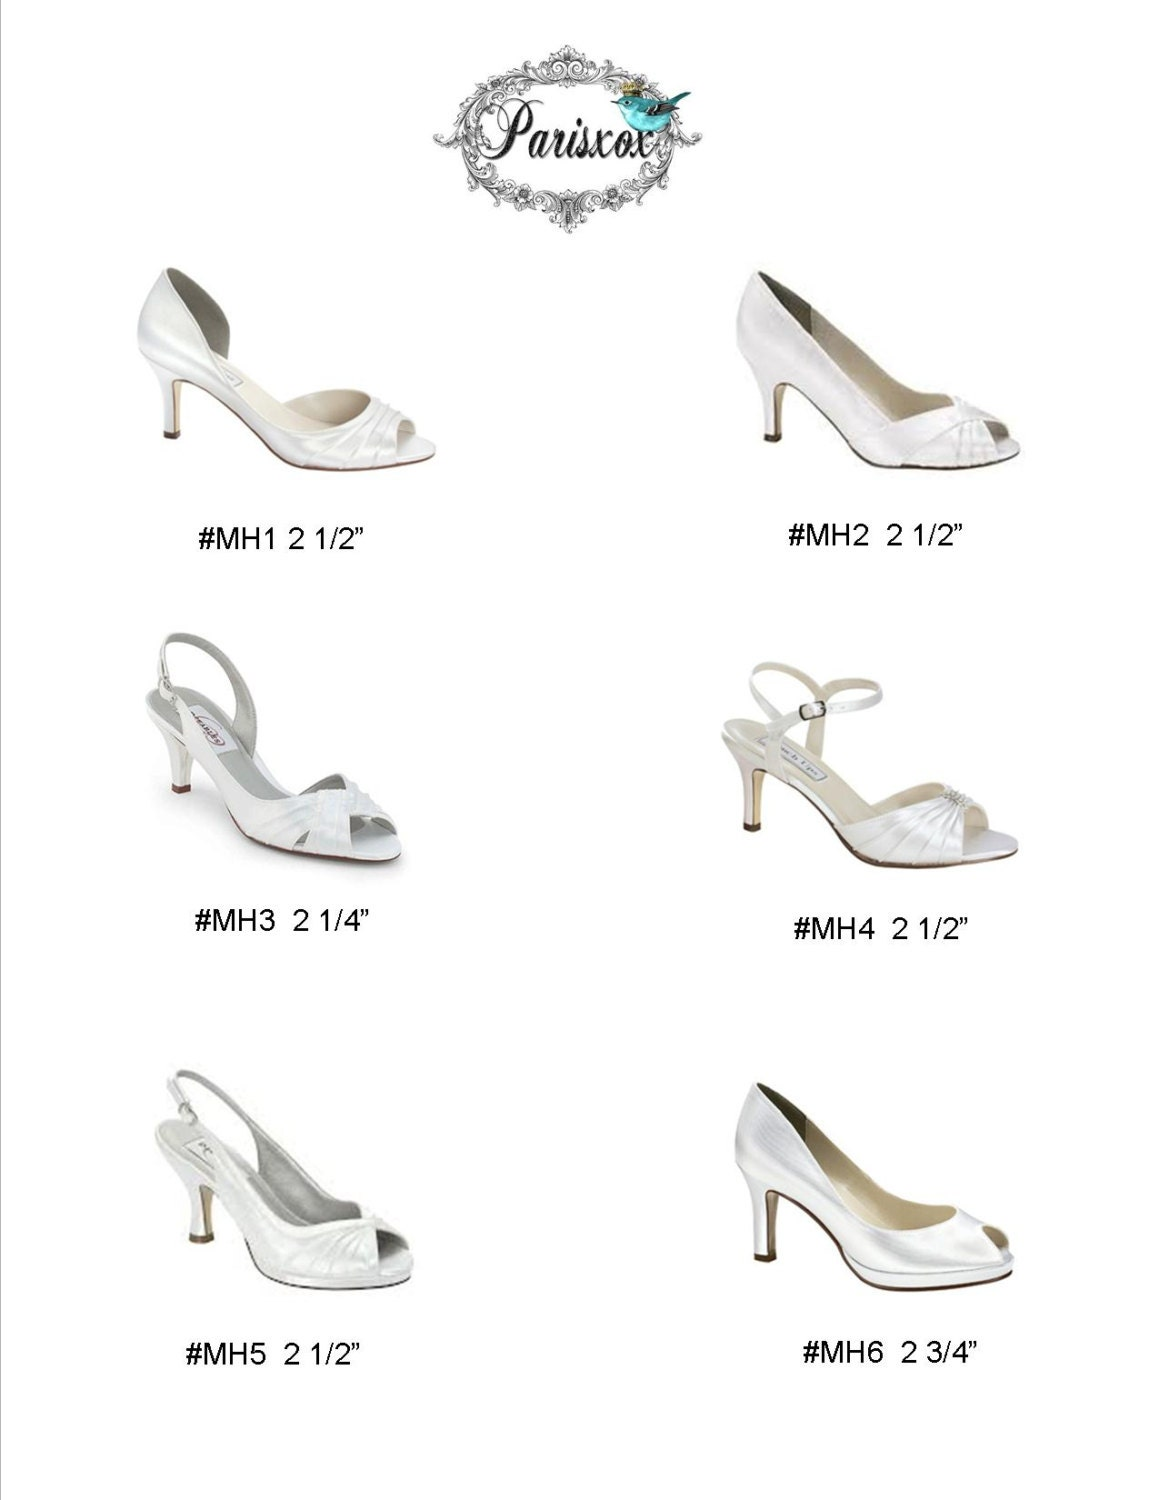 Wedding Shoes - Mid Heel - Medium Heel - Design Choose Your Own Shoes - Choose Design From Over 100 Colors - Choose Your Shoe Style - Custom Shoe Parisxox 0d7ca0